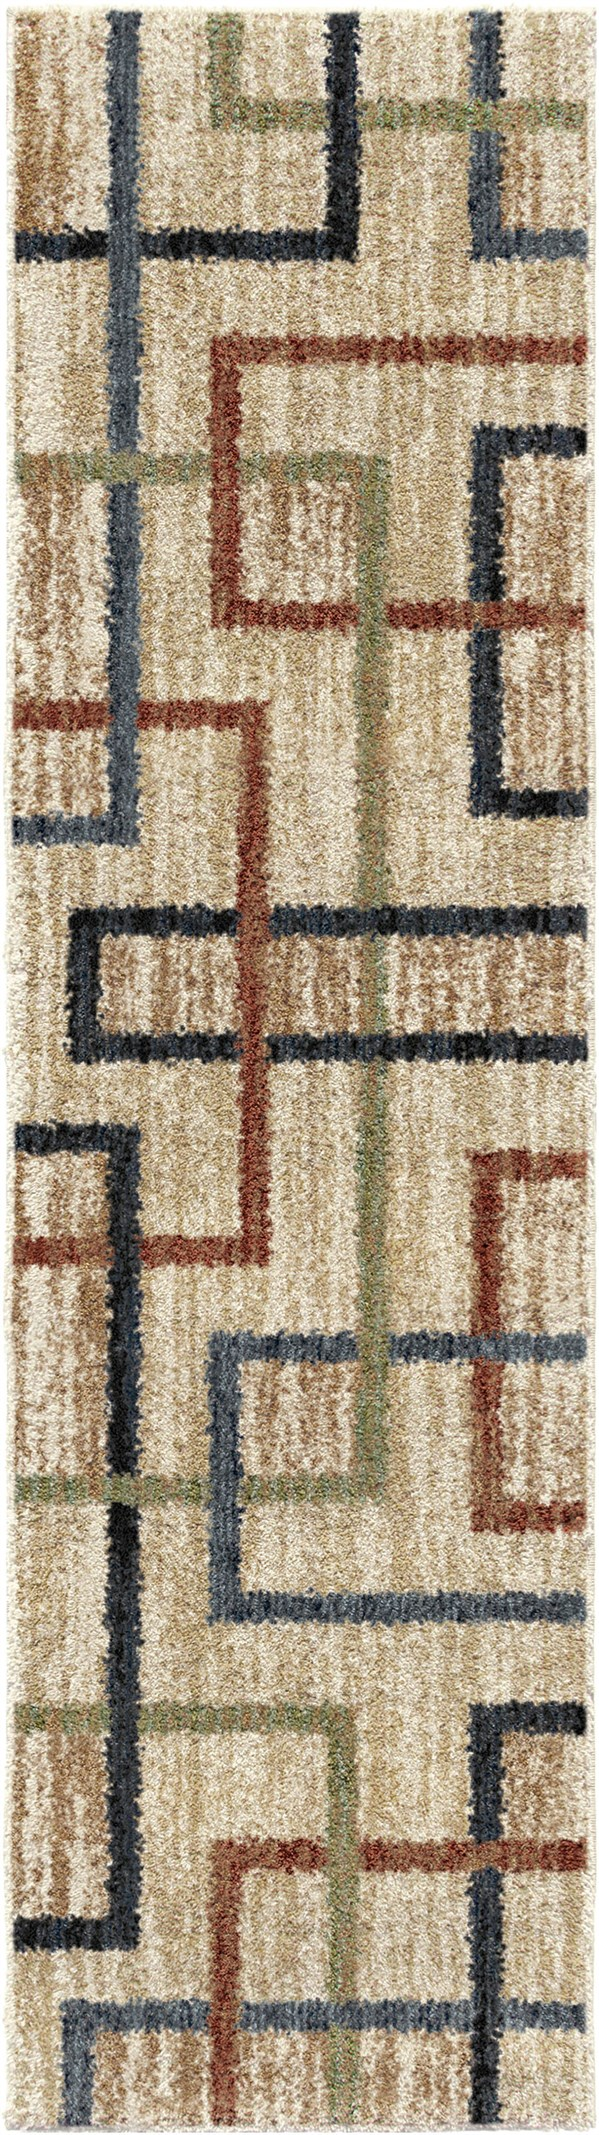 Beige, Black, Red (4432) Abstract Area Rug